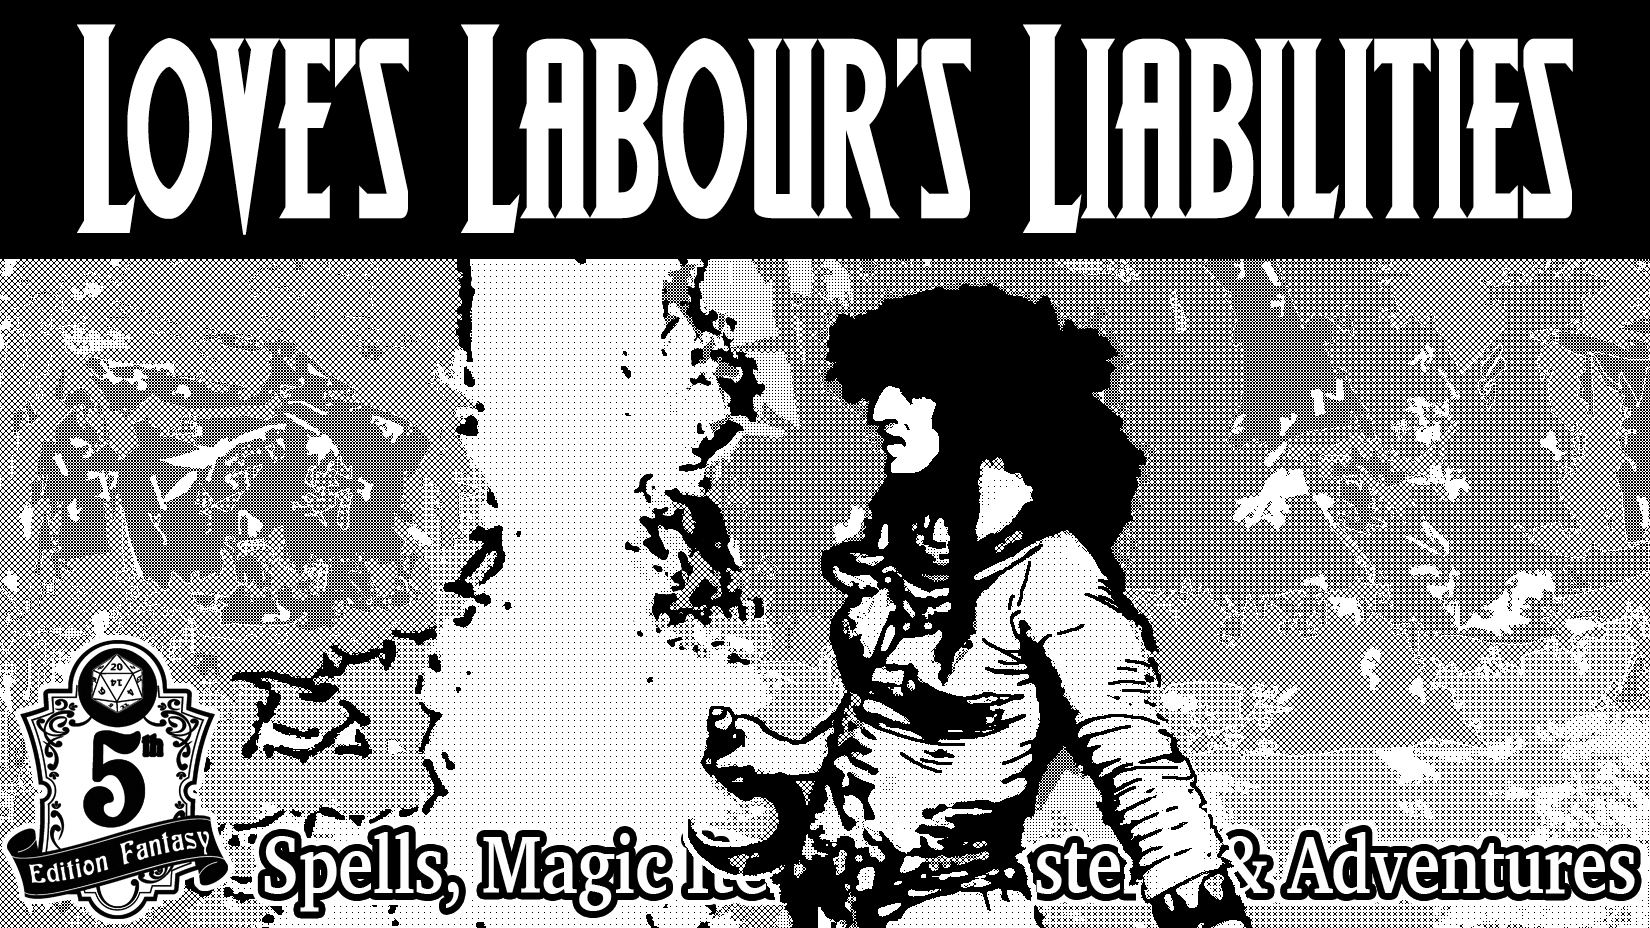 COVER, FRONT - Love's Labour's Liabilities w Credits CROPPED Second - 300 dpi.jpg